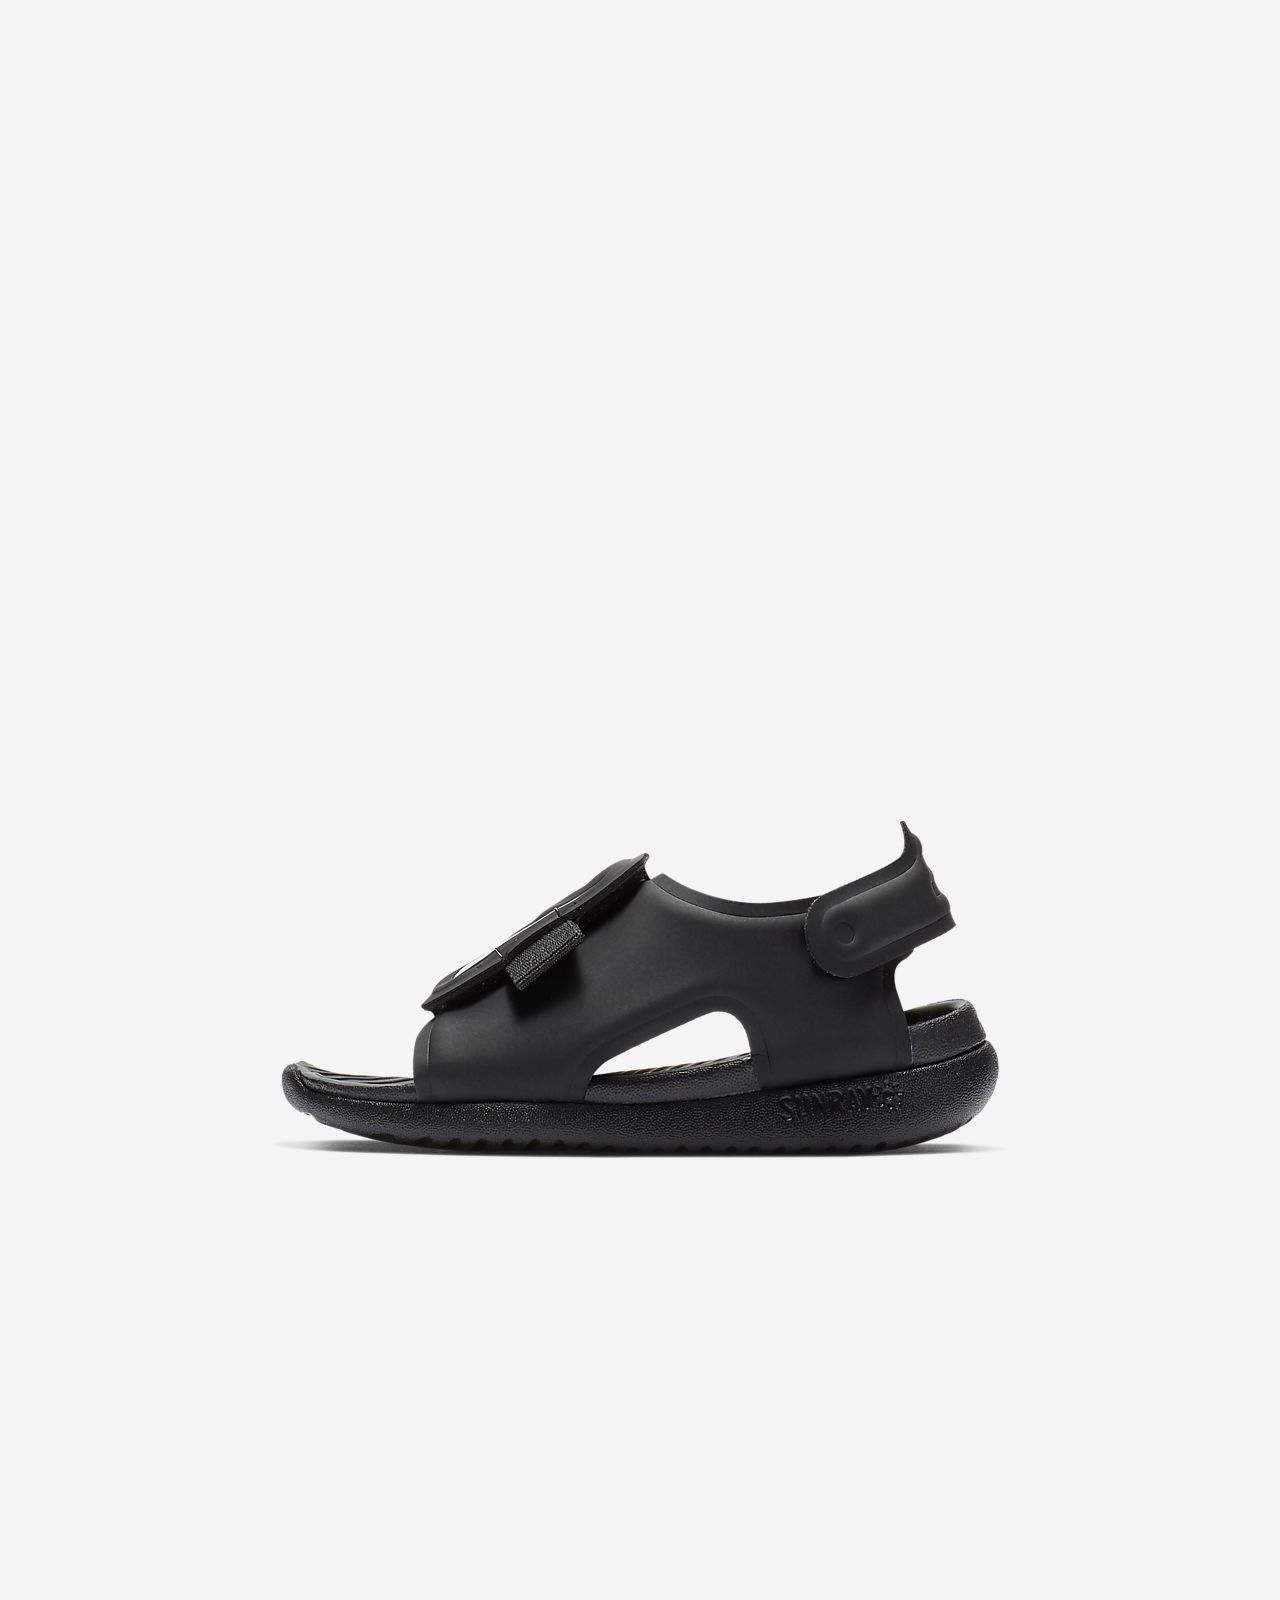 Nike Sunray Adjust 5 Baby & Toddler Sandal